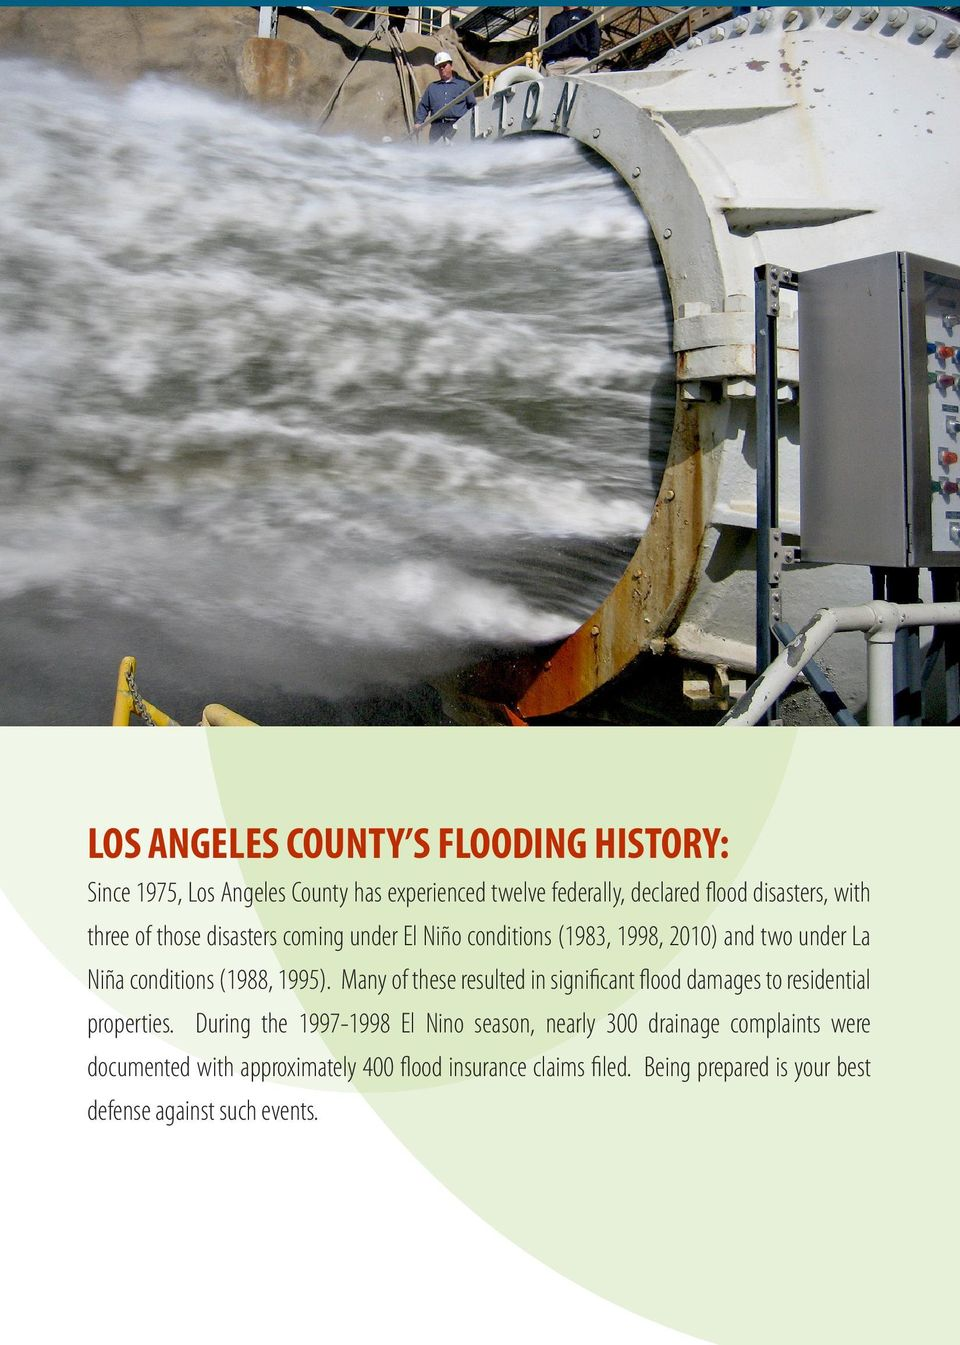 Many of these resulted in significant flood damages to residential properties.